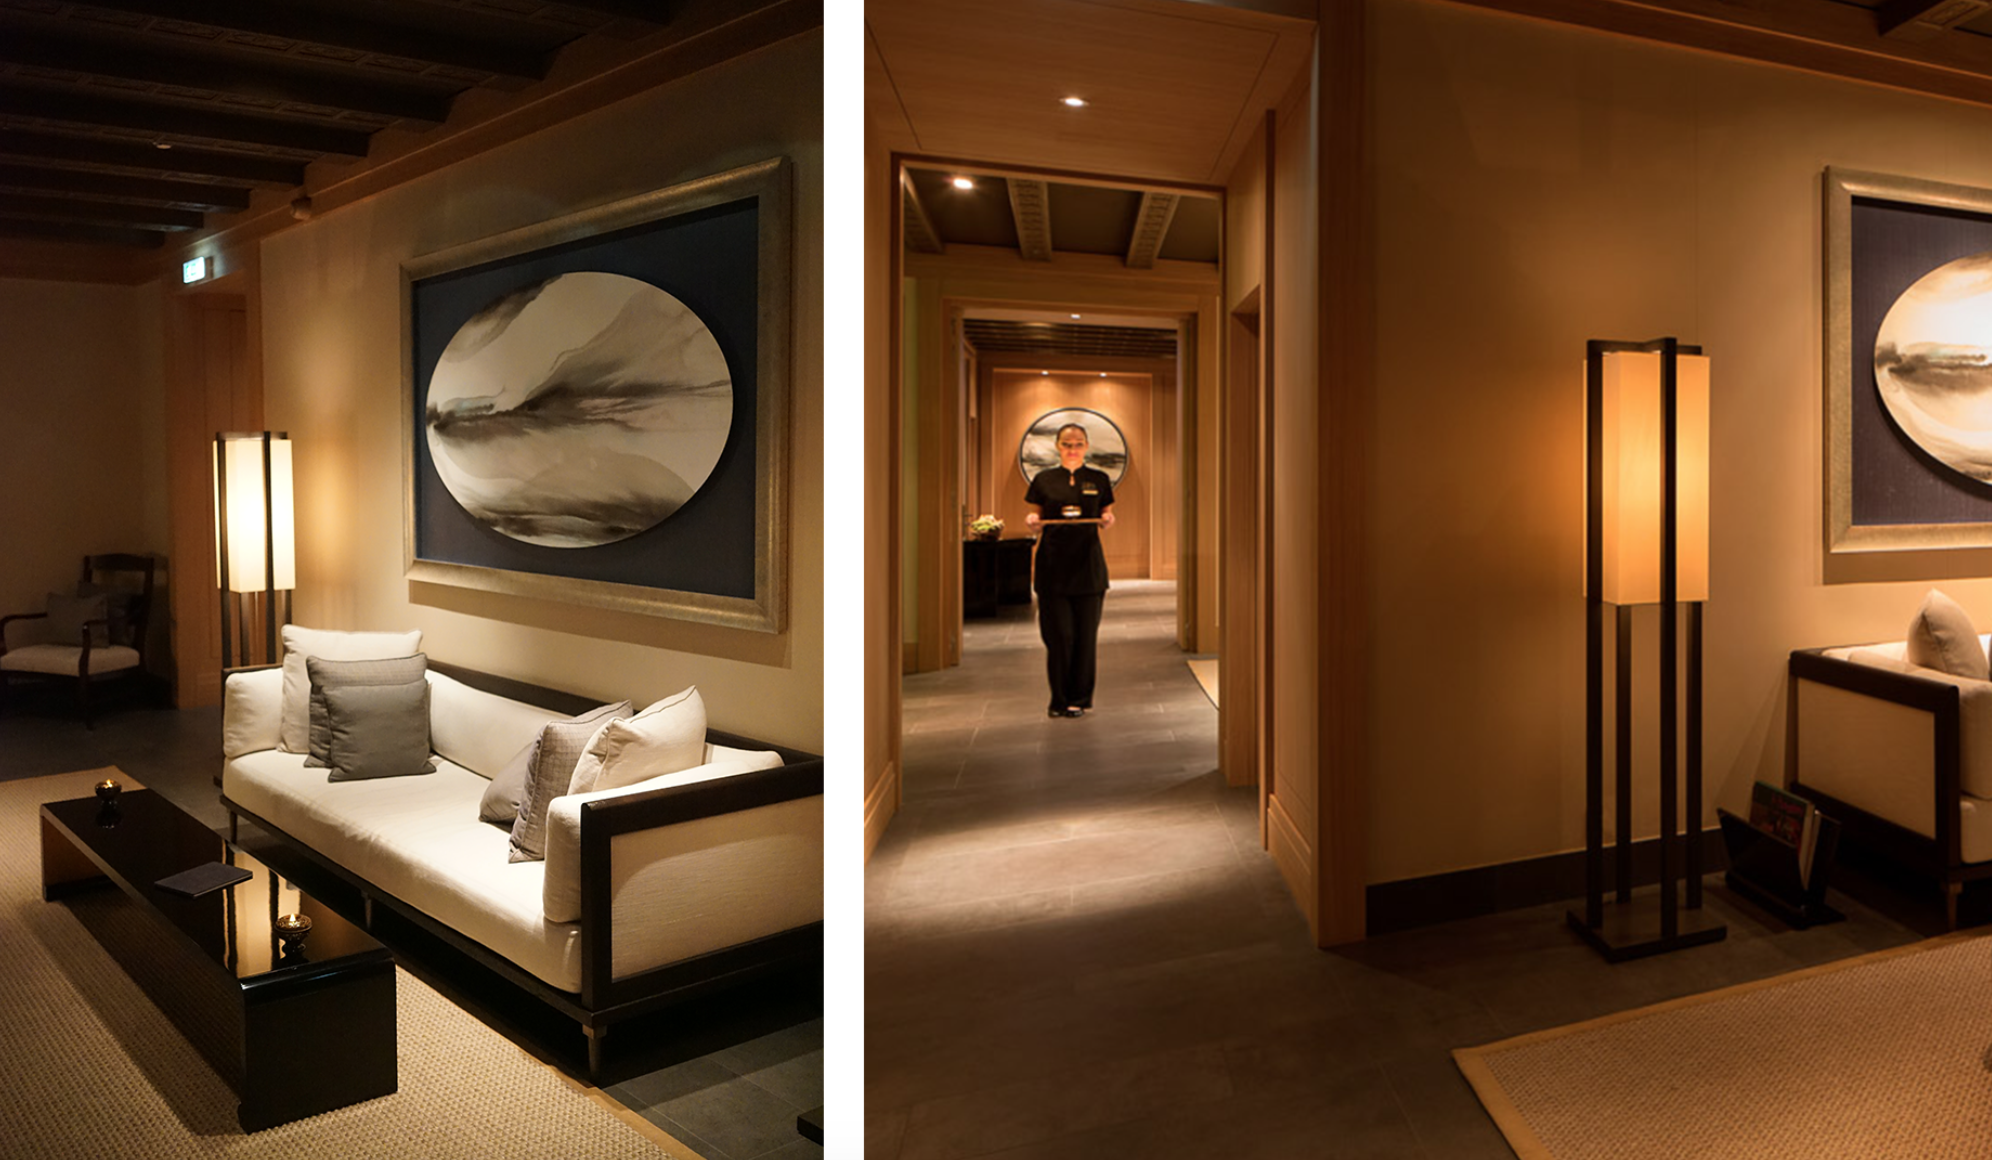 Spa afternoons at the peninsula hotel paris lucywillshowyou for Hotel spa paris couple